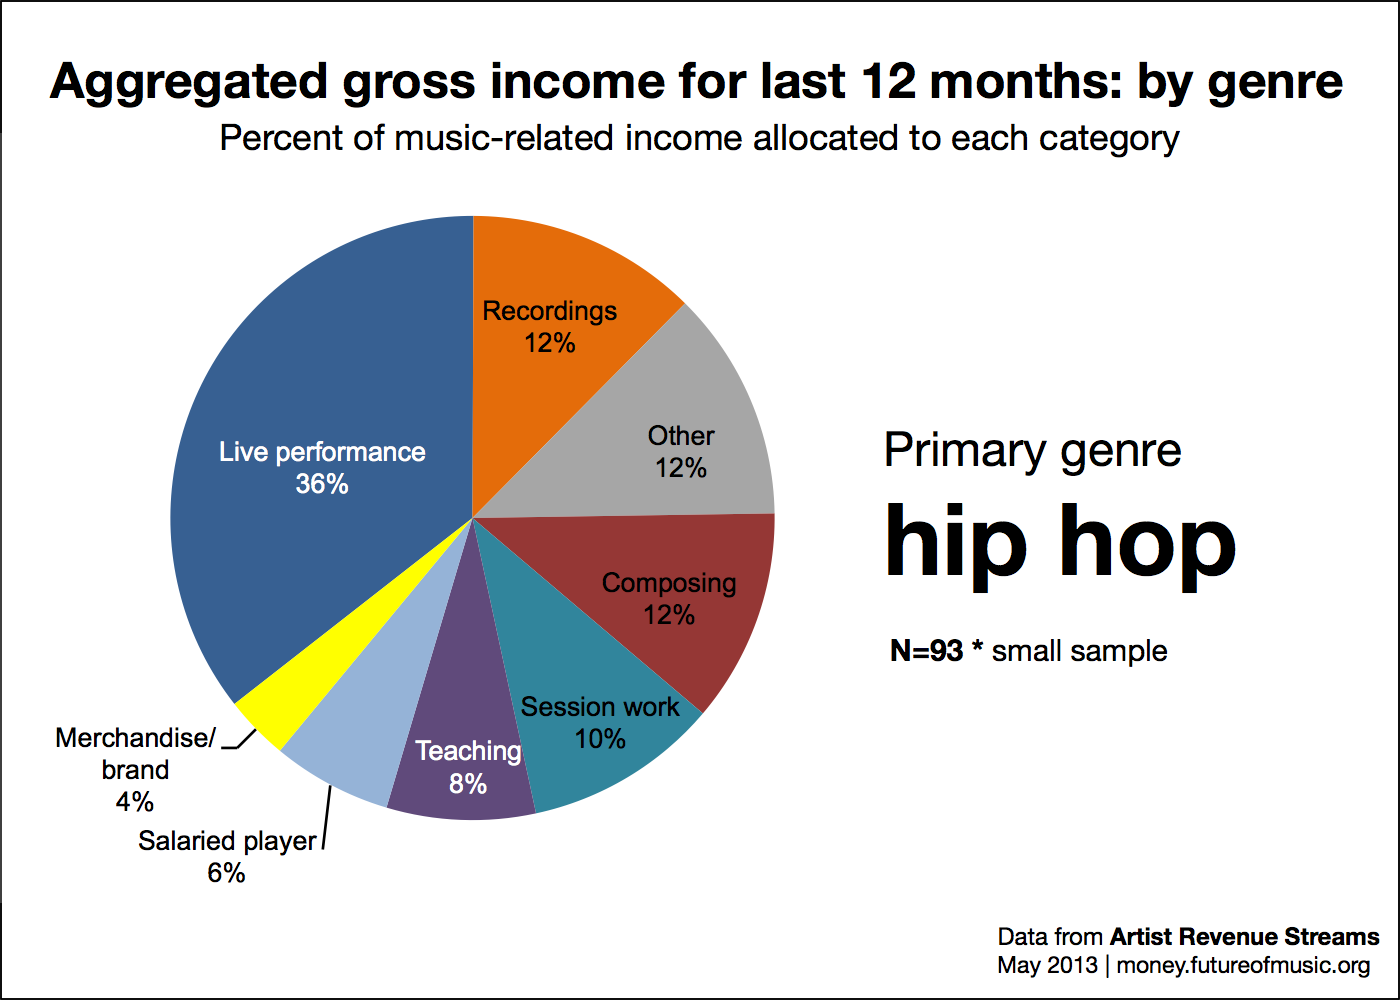 Revenue allocation for hip hop genre